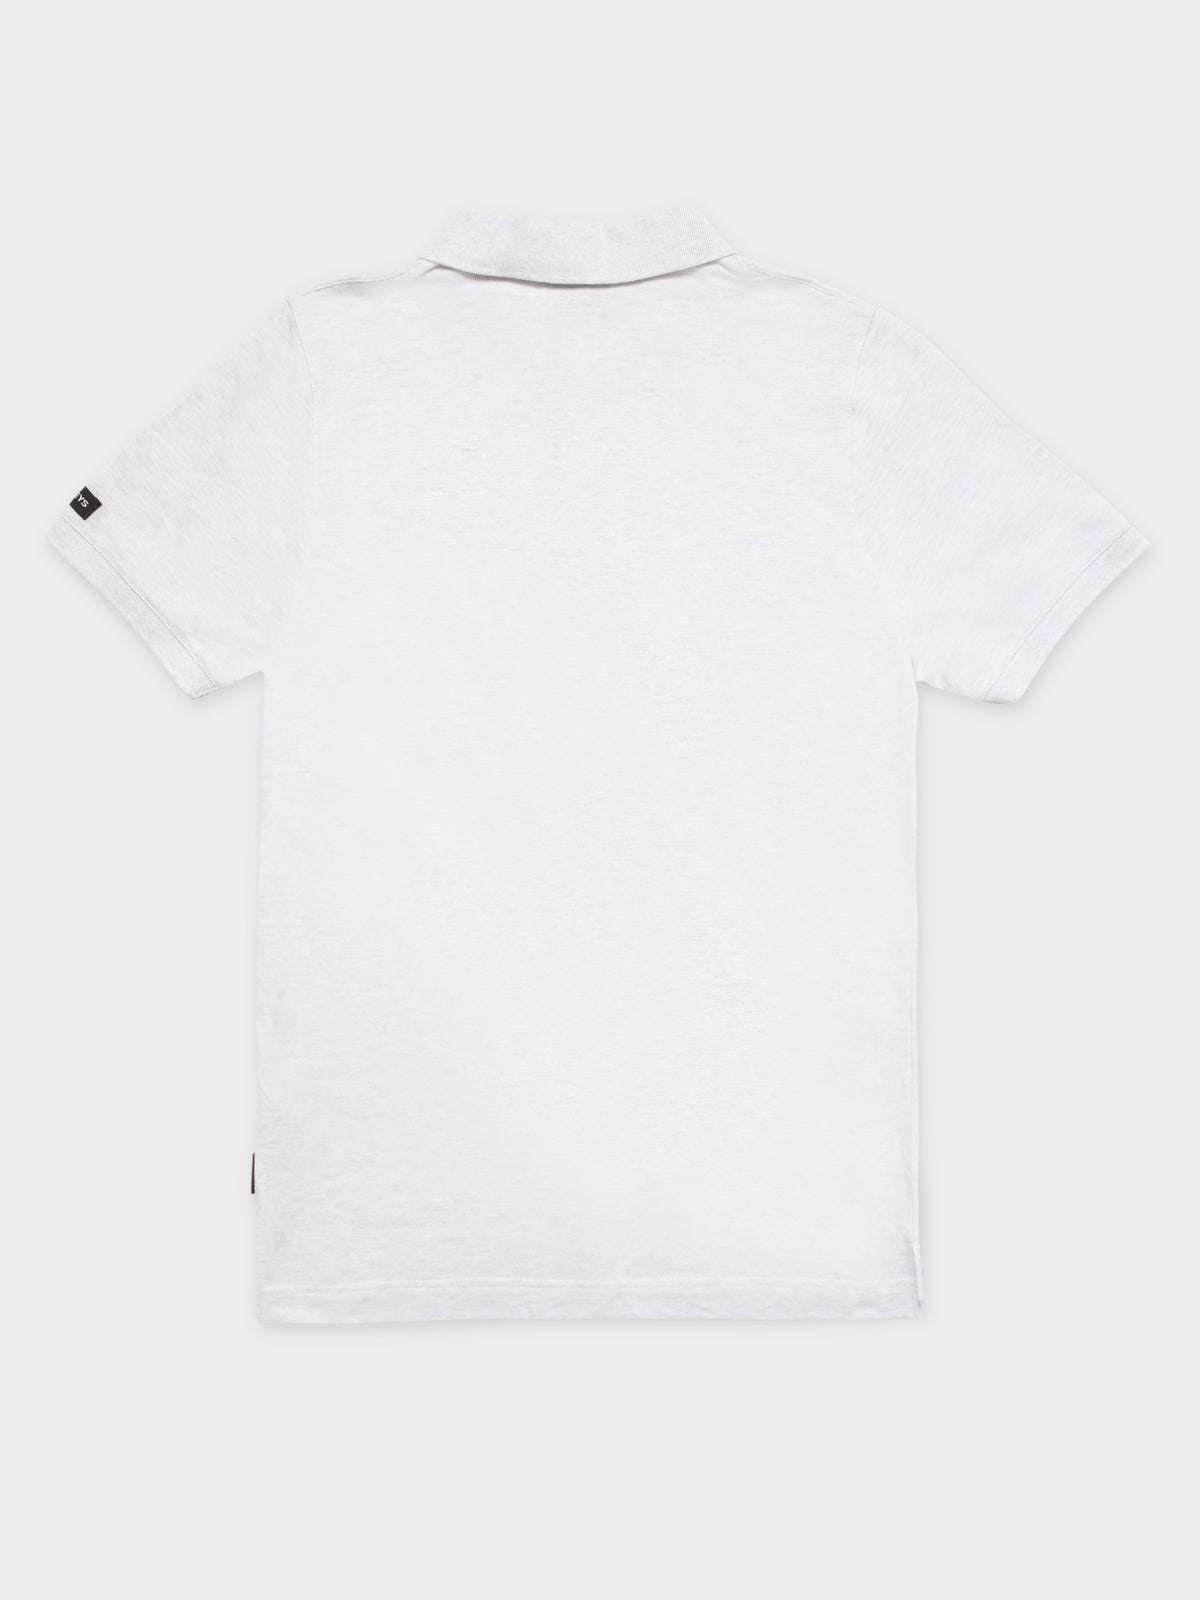 Otis Polo T-Shirt in Snow Marle